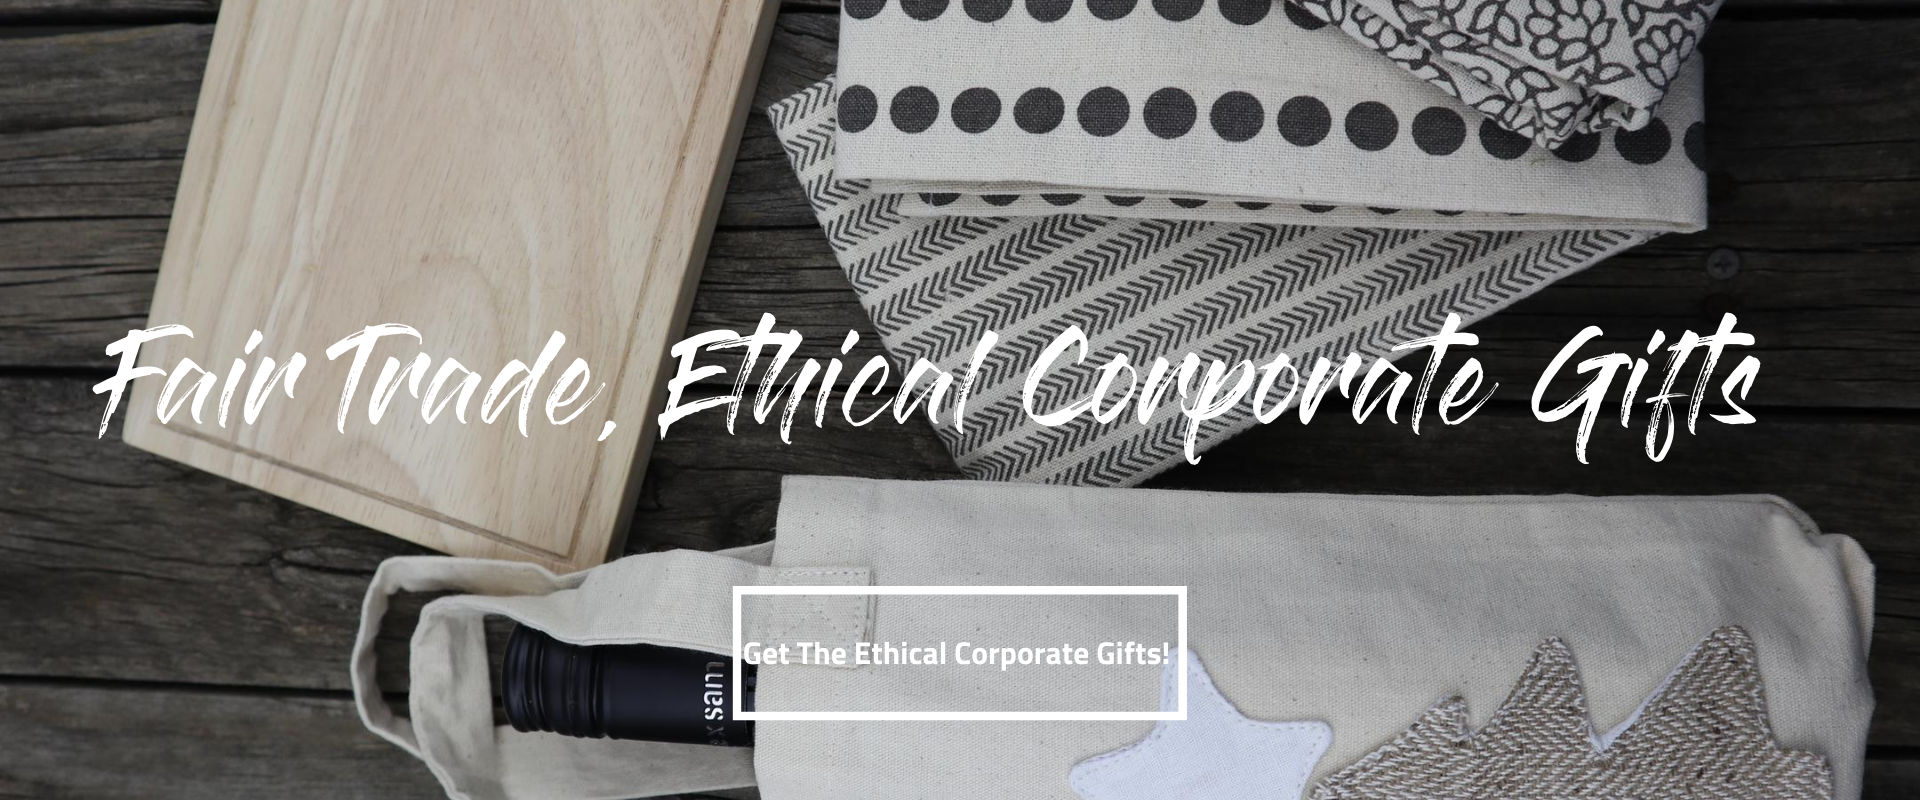 Fair Trade, Ethical, Eco-Friendly, Sustainable Corporate Gifts